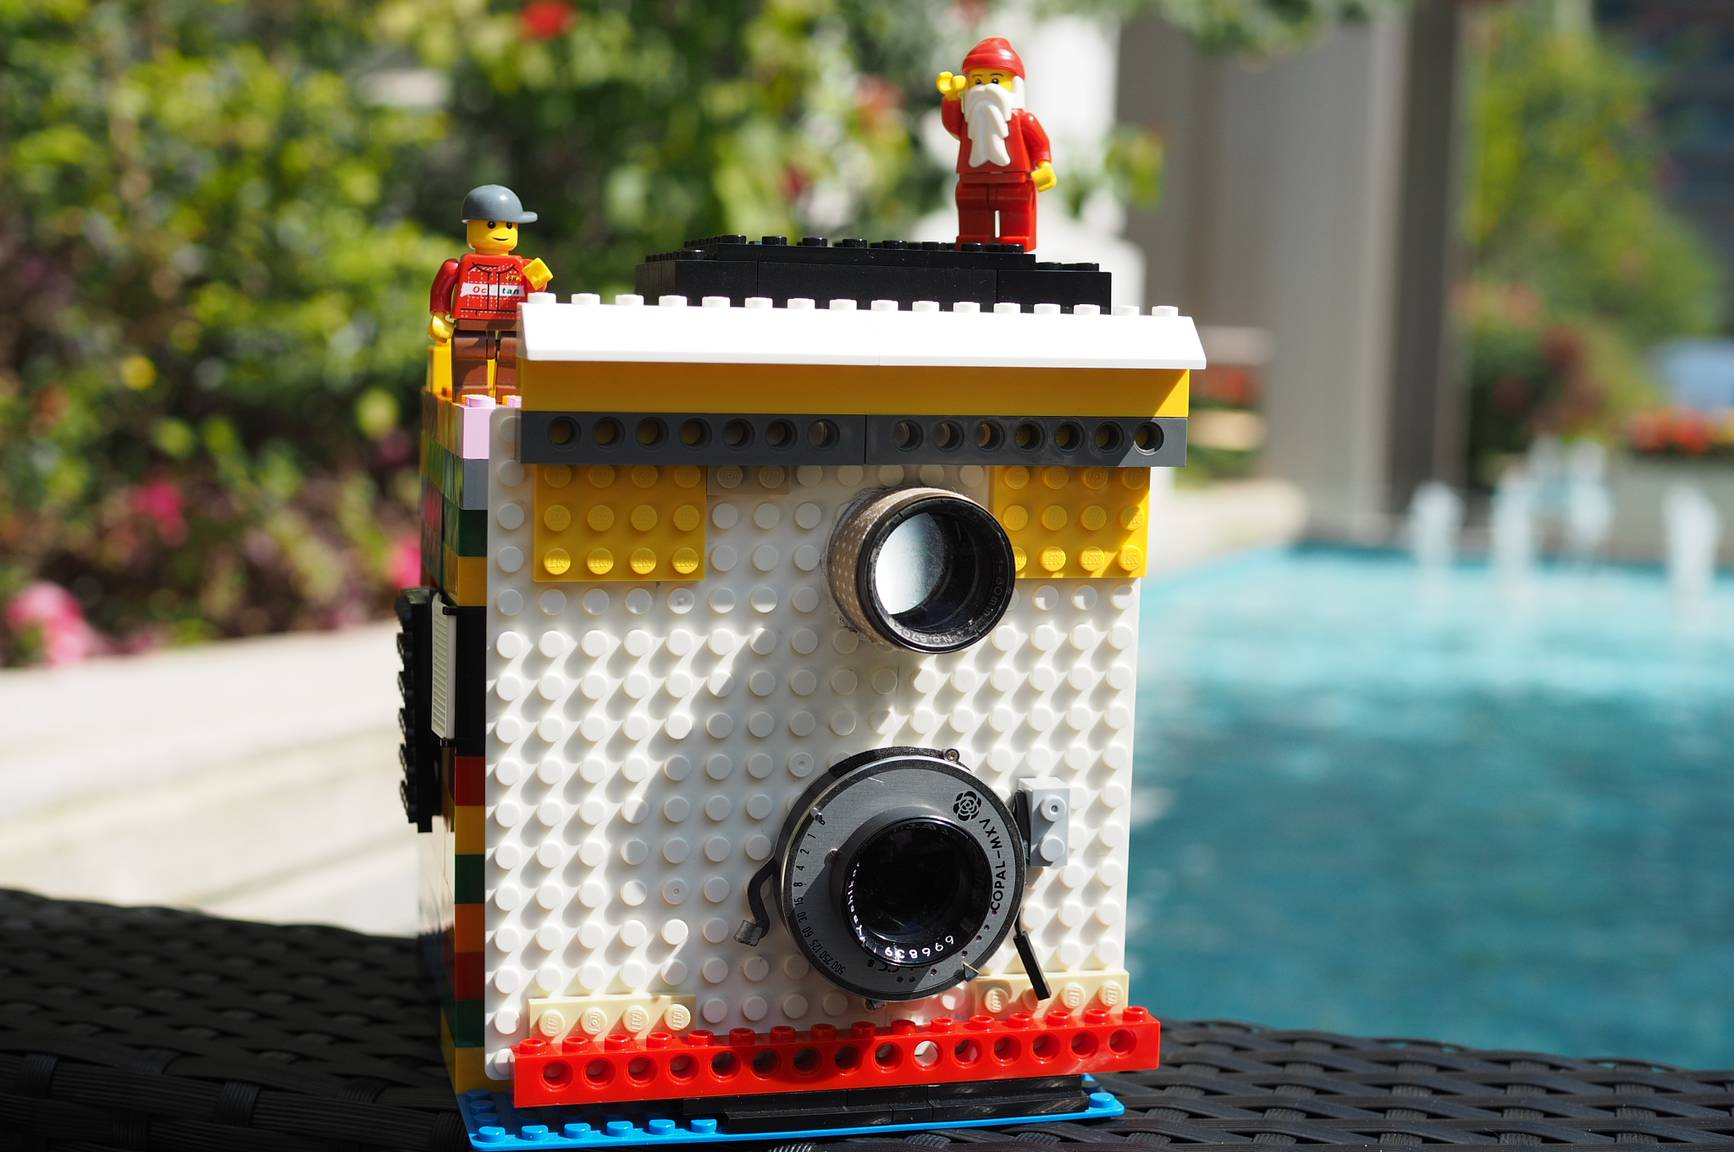 Albertino and his Instant Camera Made Out of LEGO · Lomography